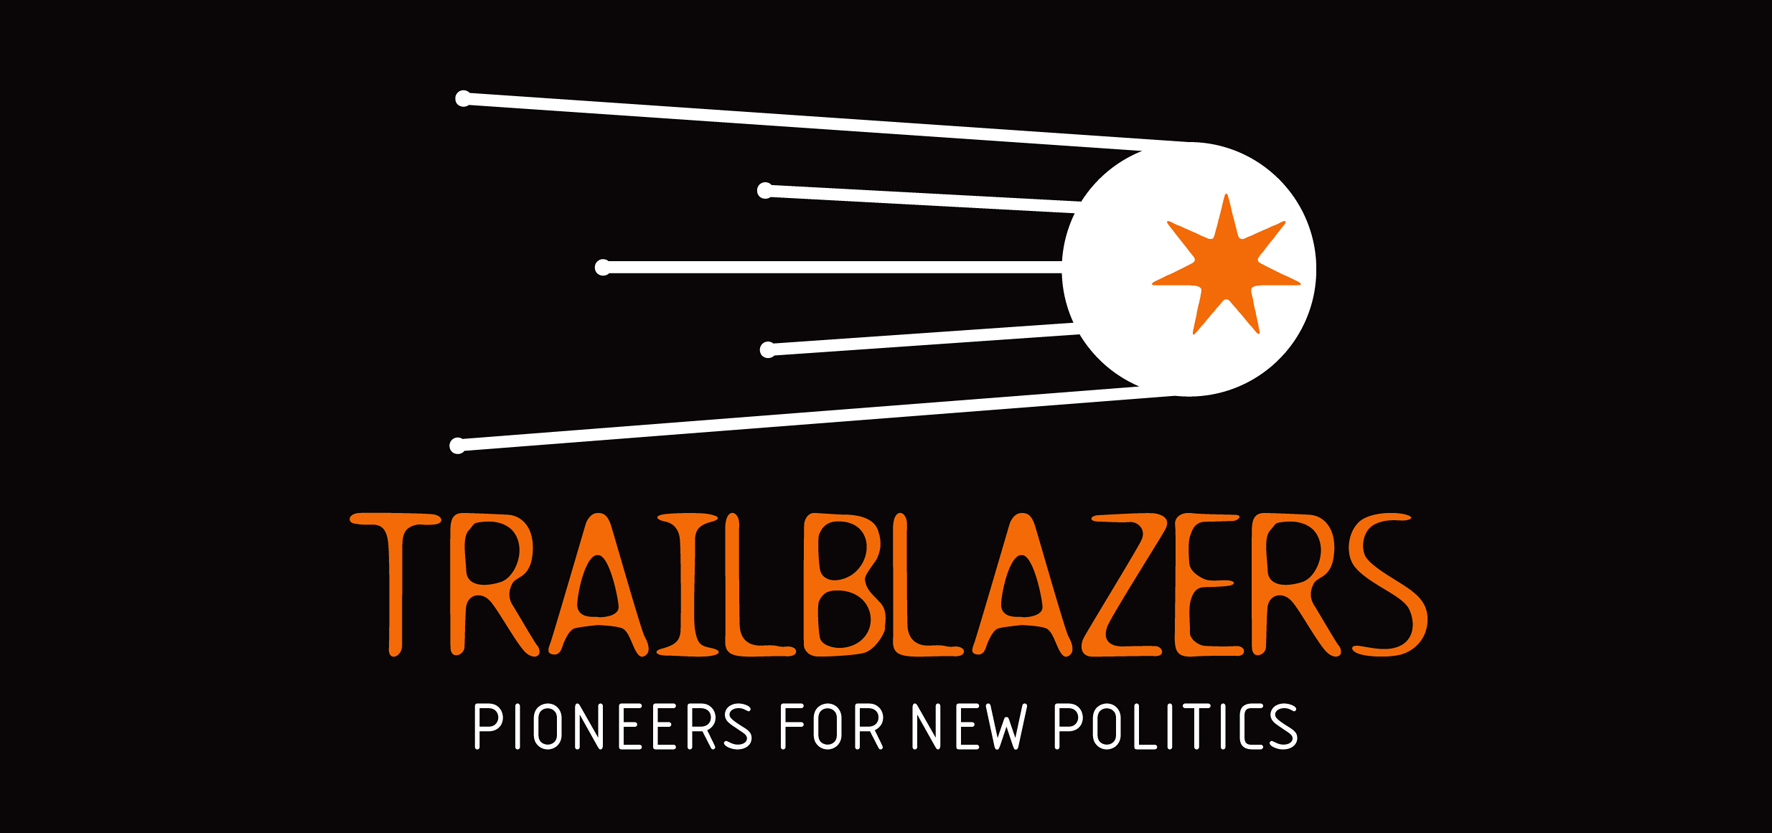 trailblazer_logo_copy.jpg